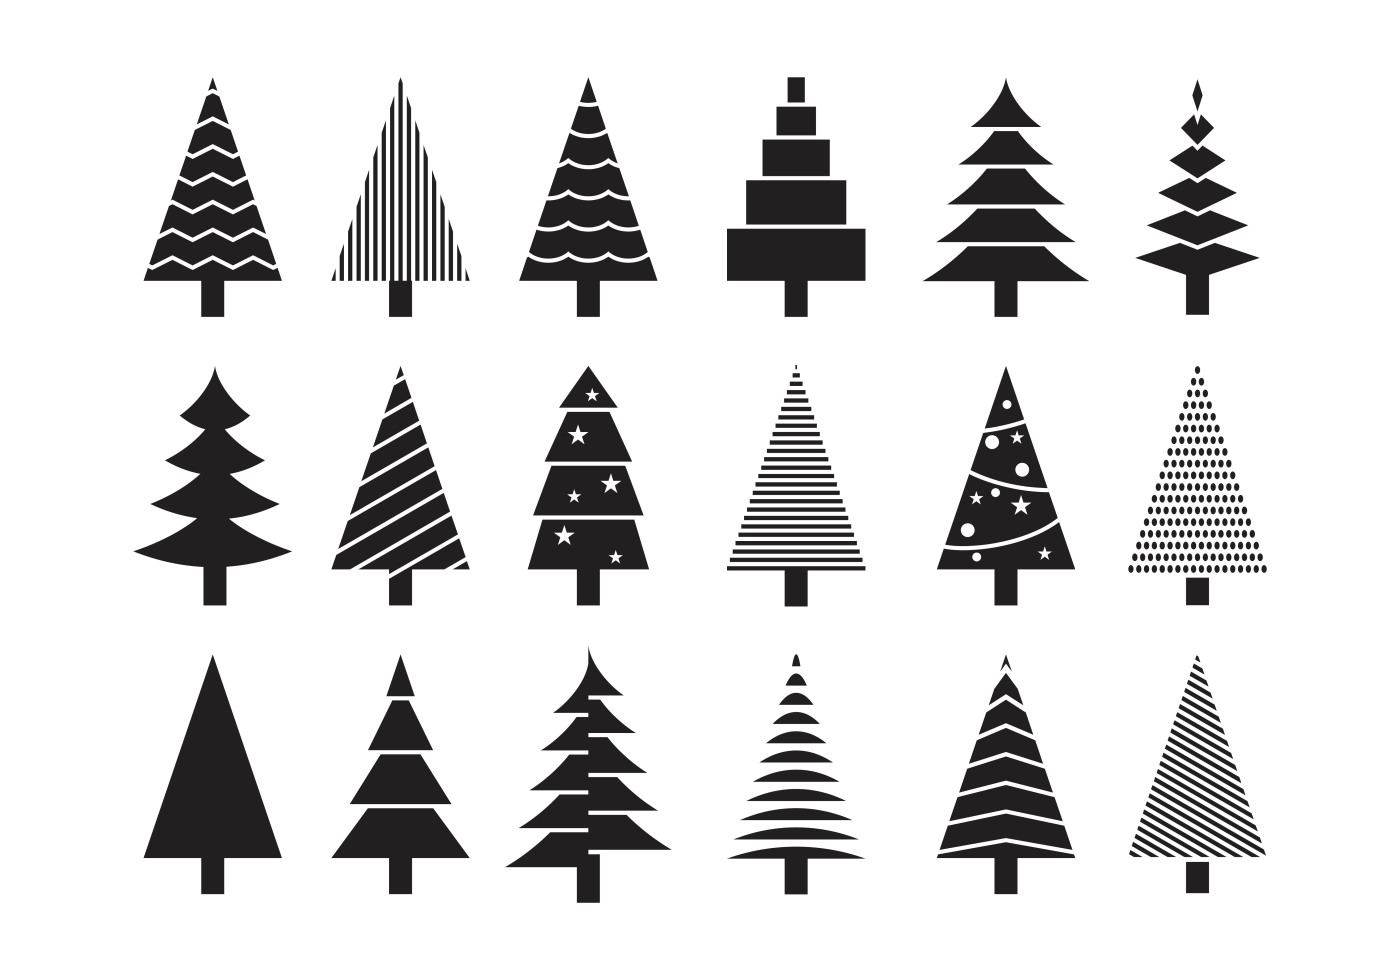 Sapin icons vector download free vector art stock graphics images - Sapin clipart ...